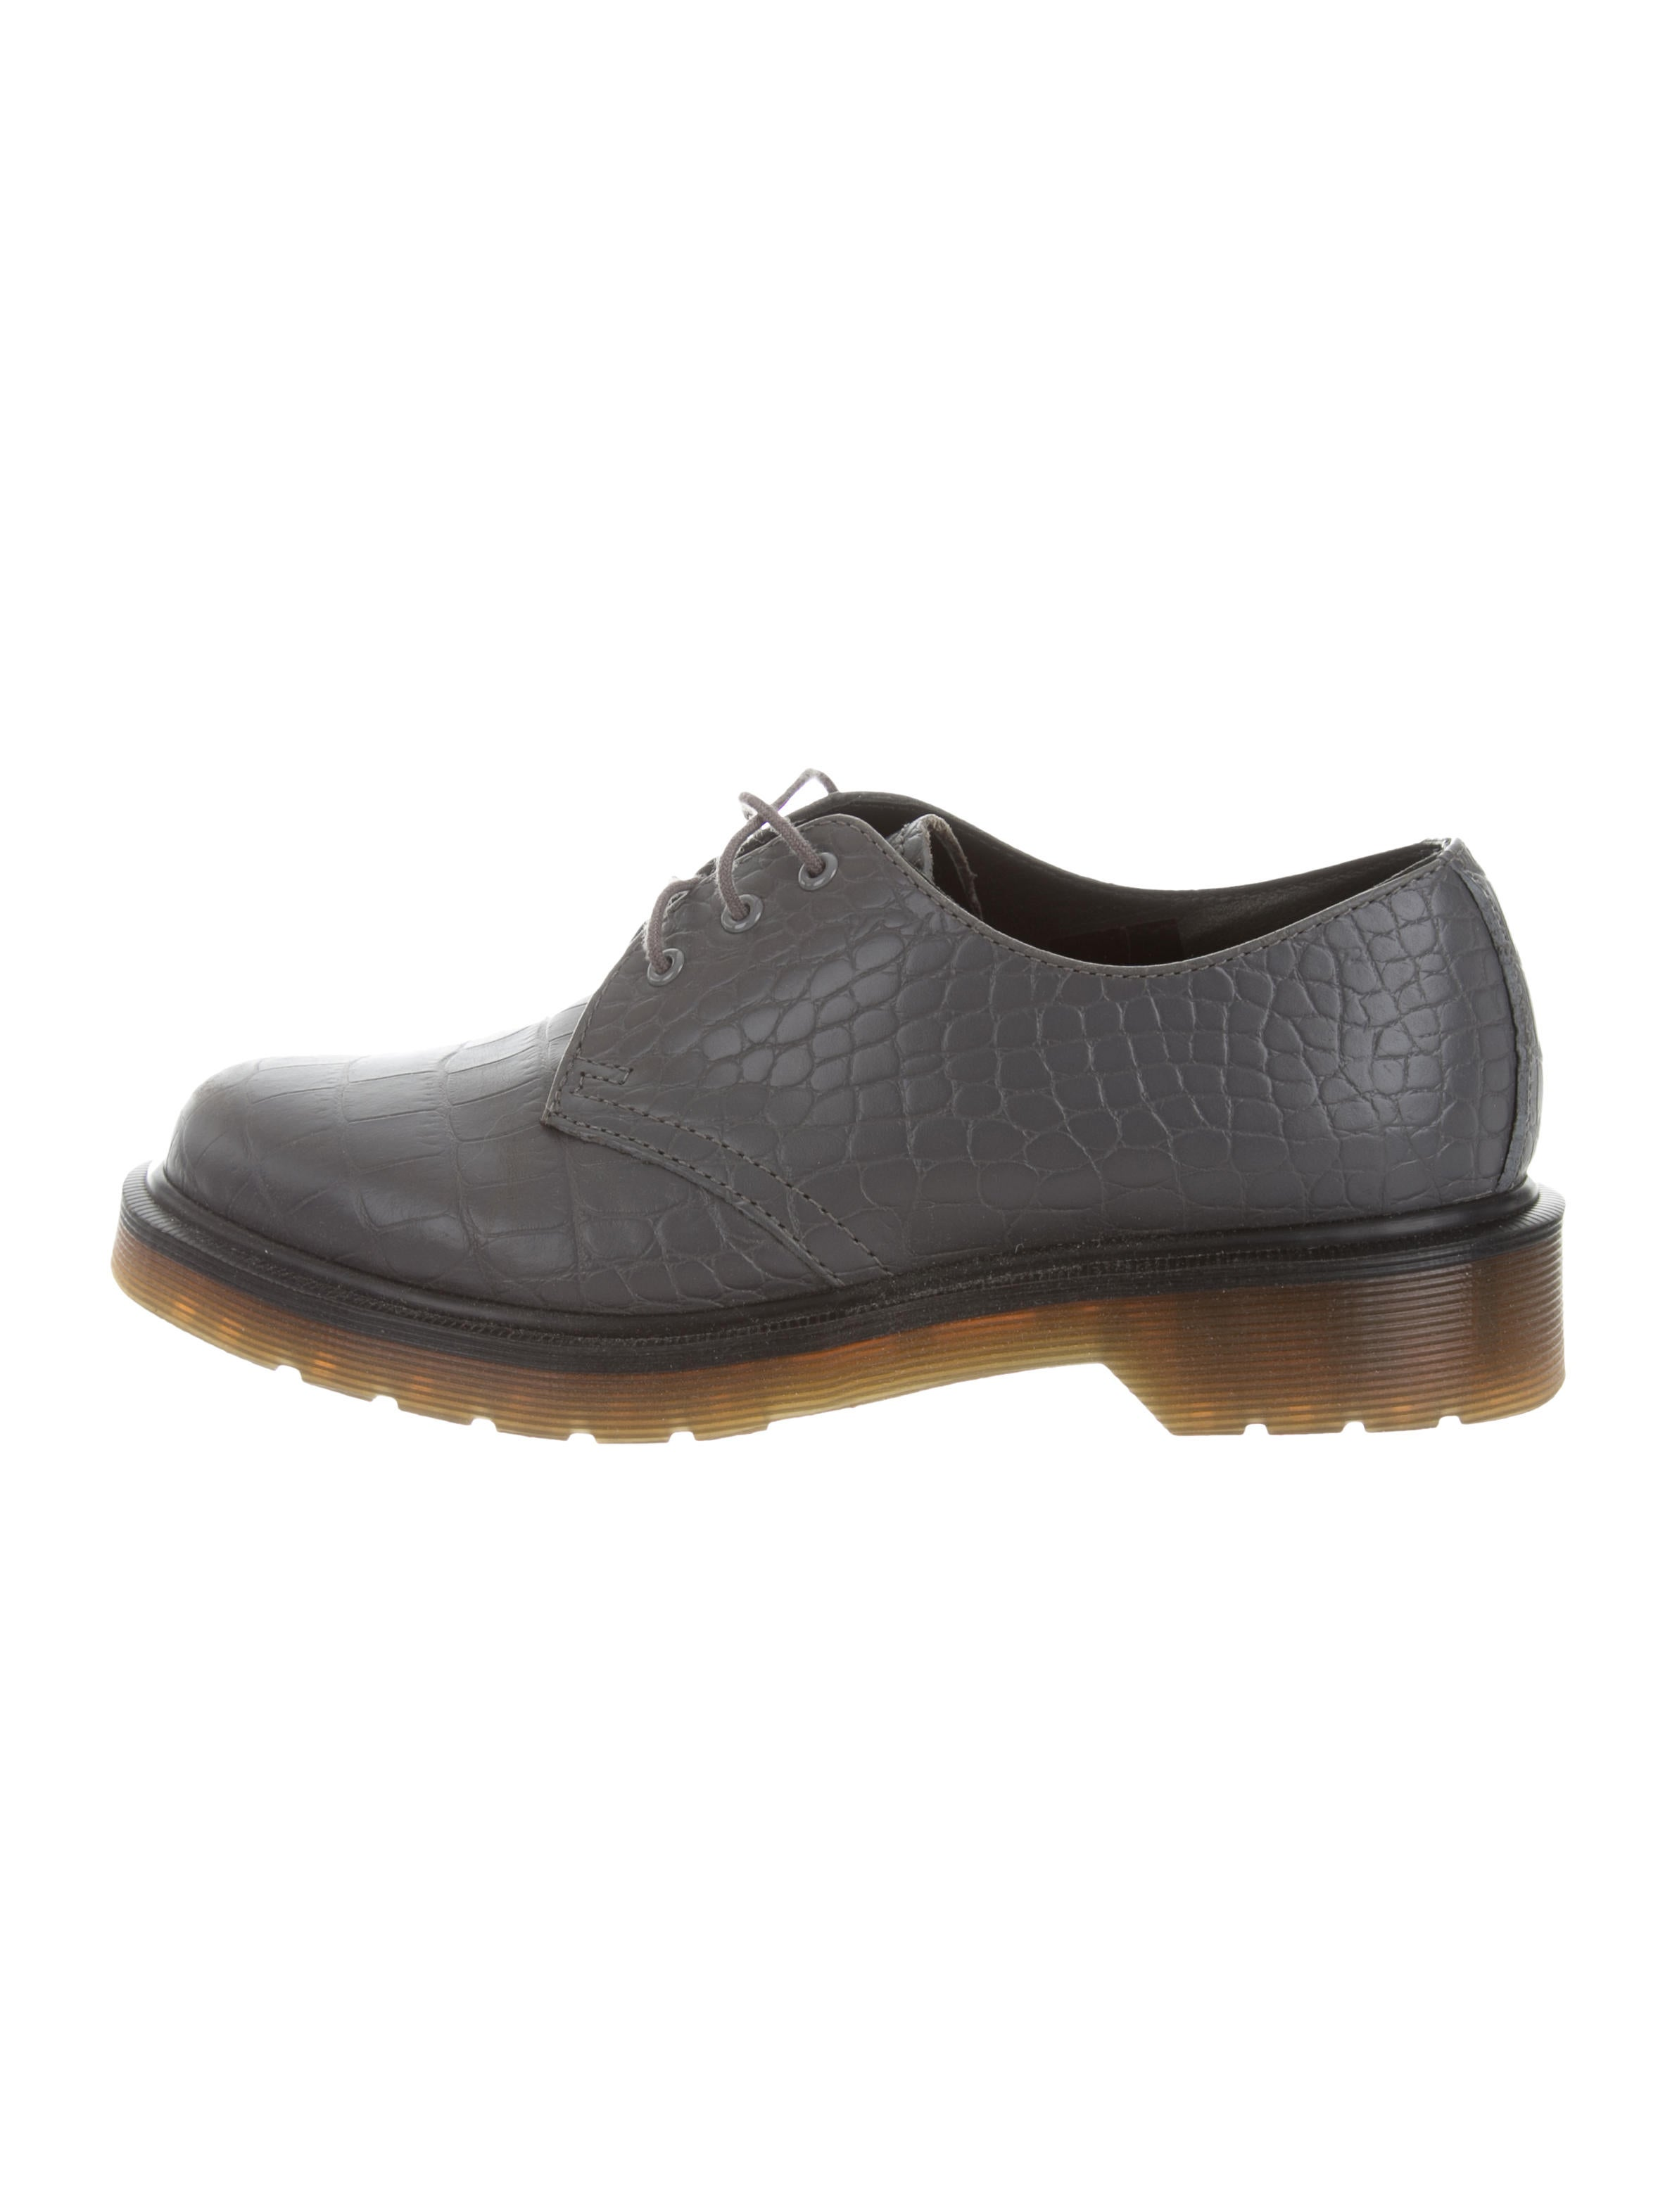 Dr. Martens Round-Toe Oxfords w/ Tags buy cheap online h4GkAFhh